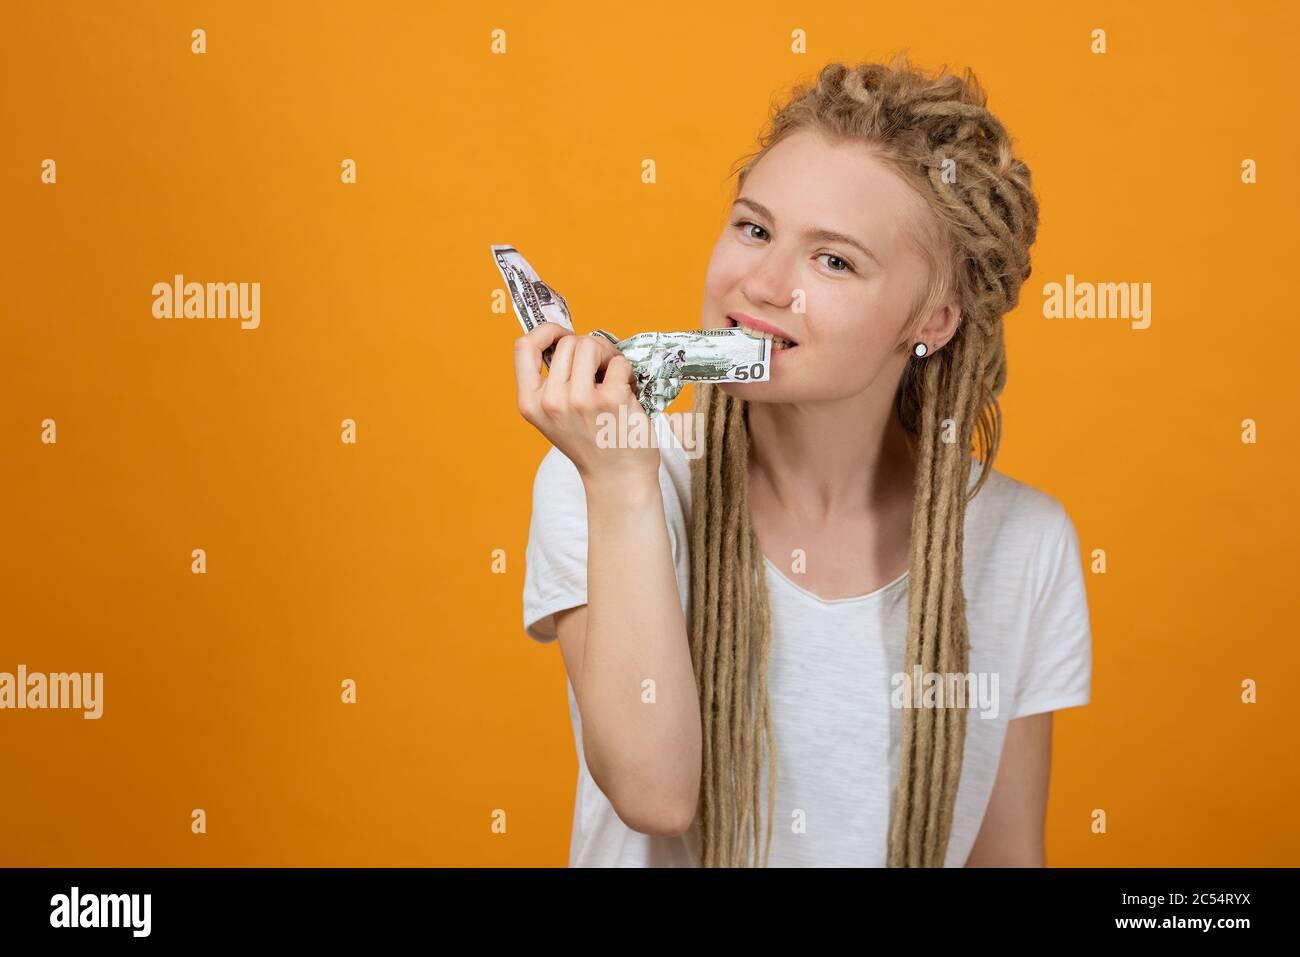 girl with long dreadlocks bites off money, crumpled banknotes in her hands Stock Photo